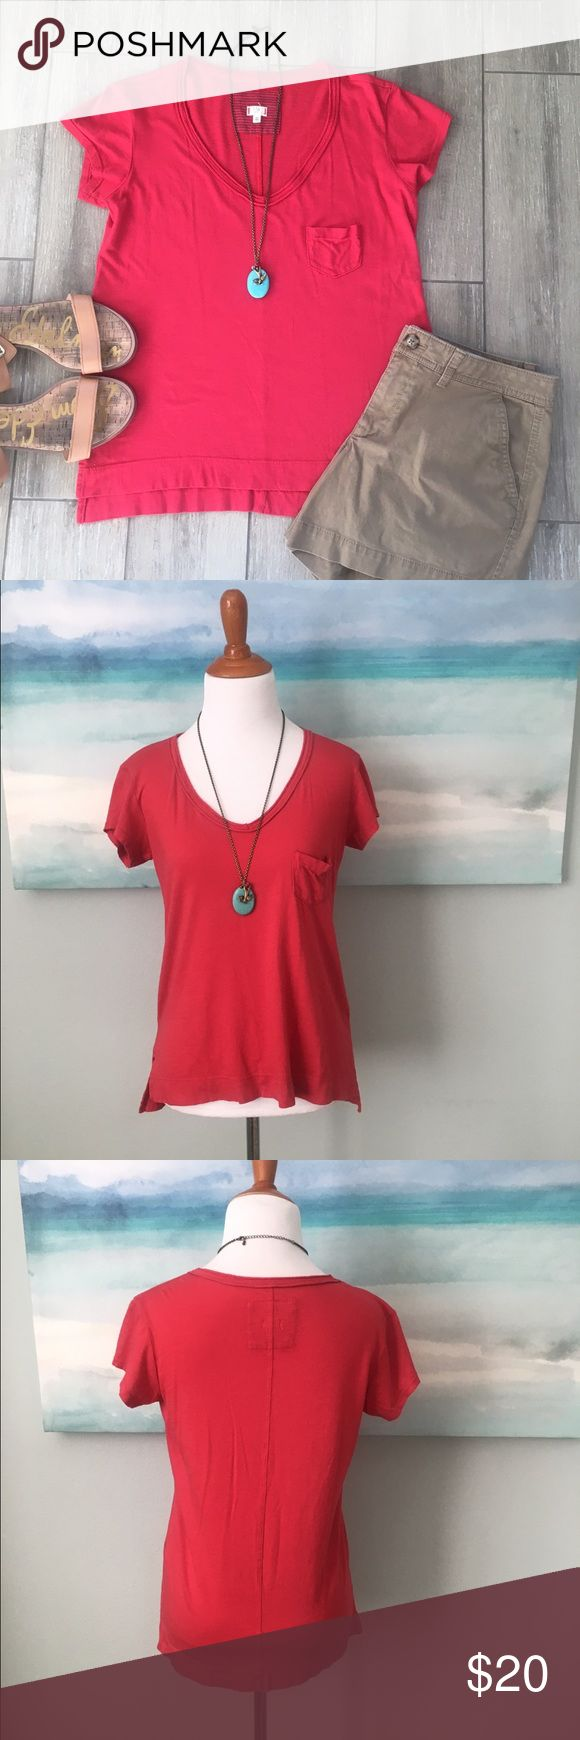 """Anthropologie t.la Tee Shirt Wrap yourself in Anthro's softest T-shirt line from t.la. This red tee is longer in back. Runs a bit small. Worn a few times. No pilling or fading or holes. 💕Measures: Approx/Flat. 17"""" bust. 23-24"""" L. Hi low. 50/50 Cotton/Modal. Bundle for best pricing! Anthropologie Tops Tees - Short Sleeve"""